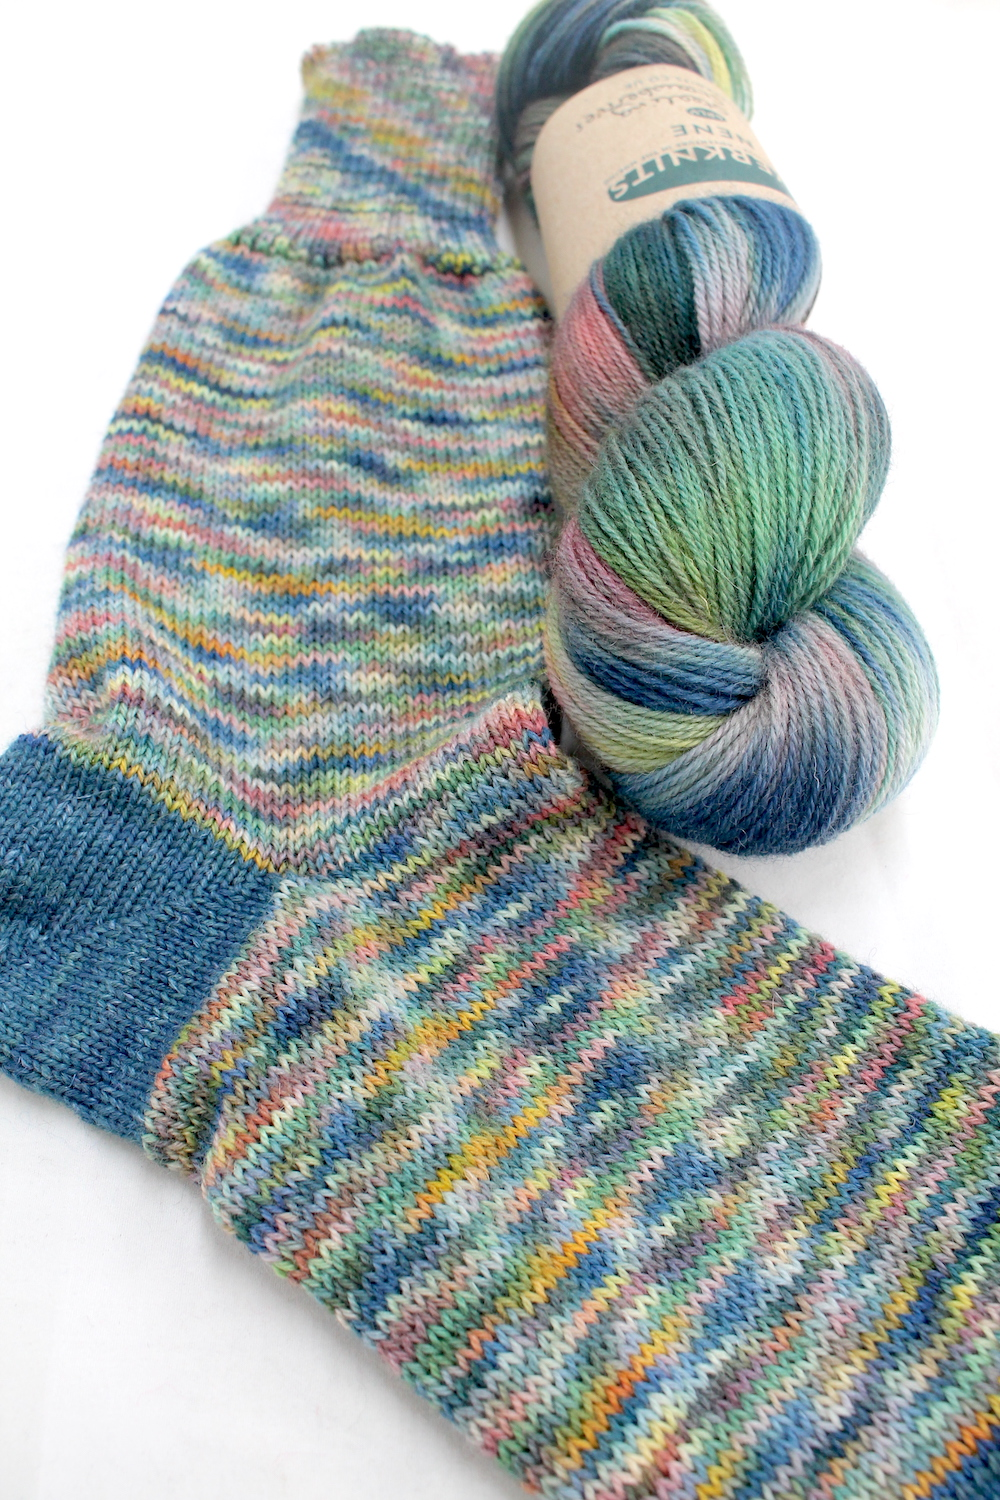 A sock knitted in the Stealing Strawberries colourway